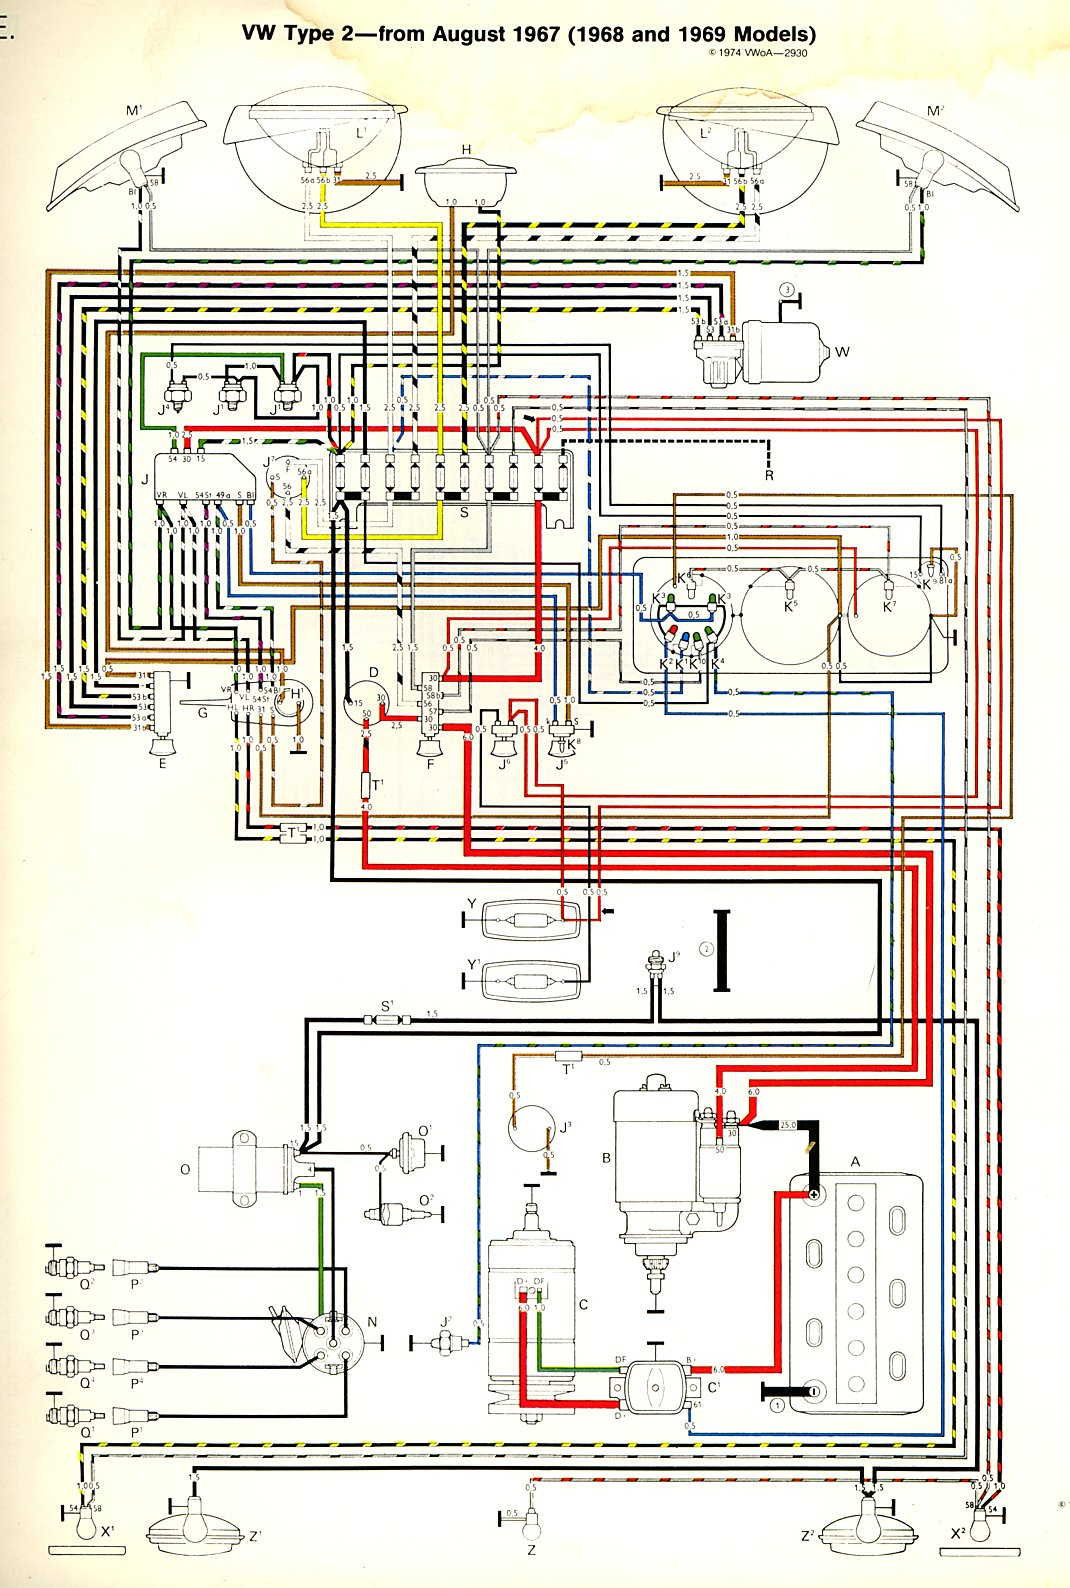 baybus_6869a 1968 69 bus wiring diagram thegoldenbug com 1968 vw bus fuse box at eliteediting.co